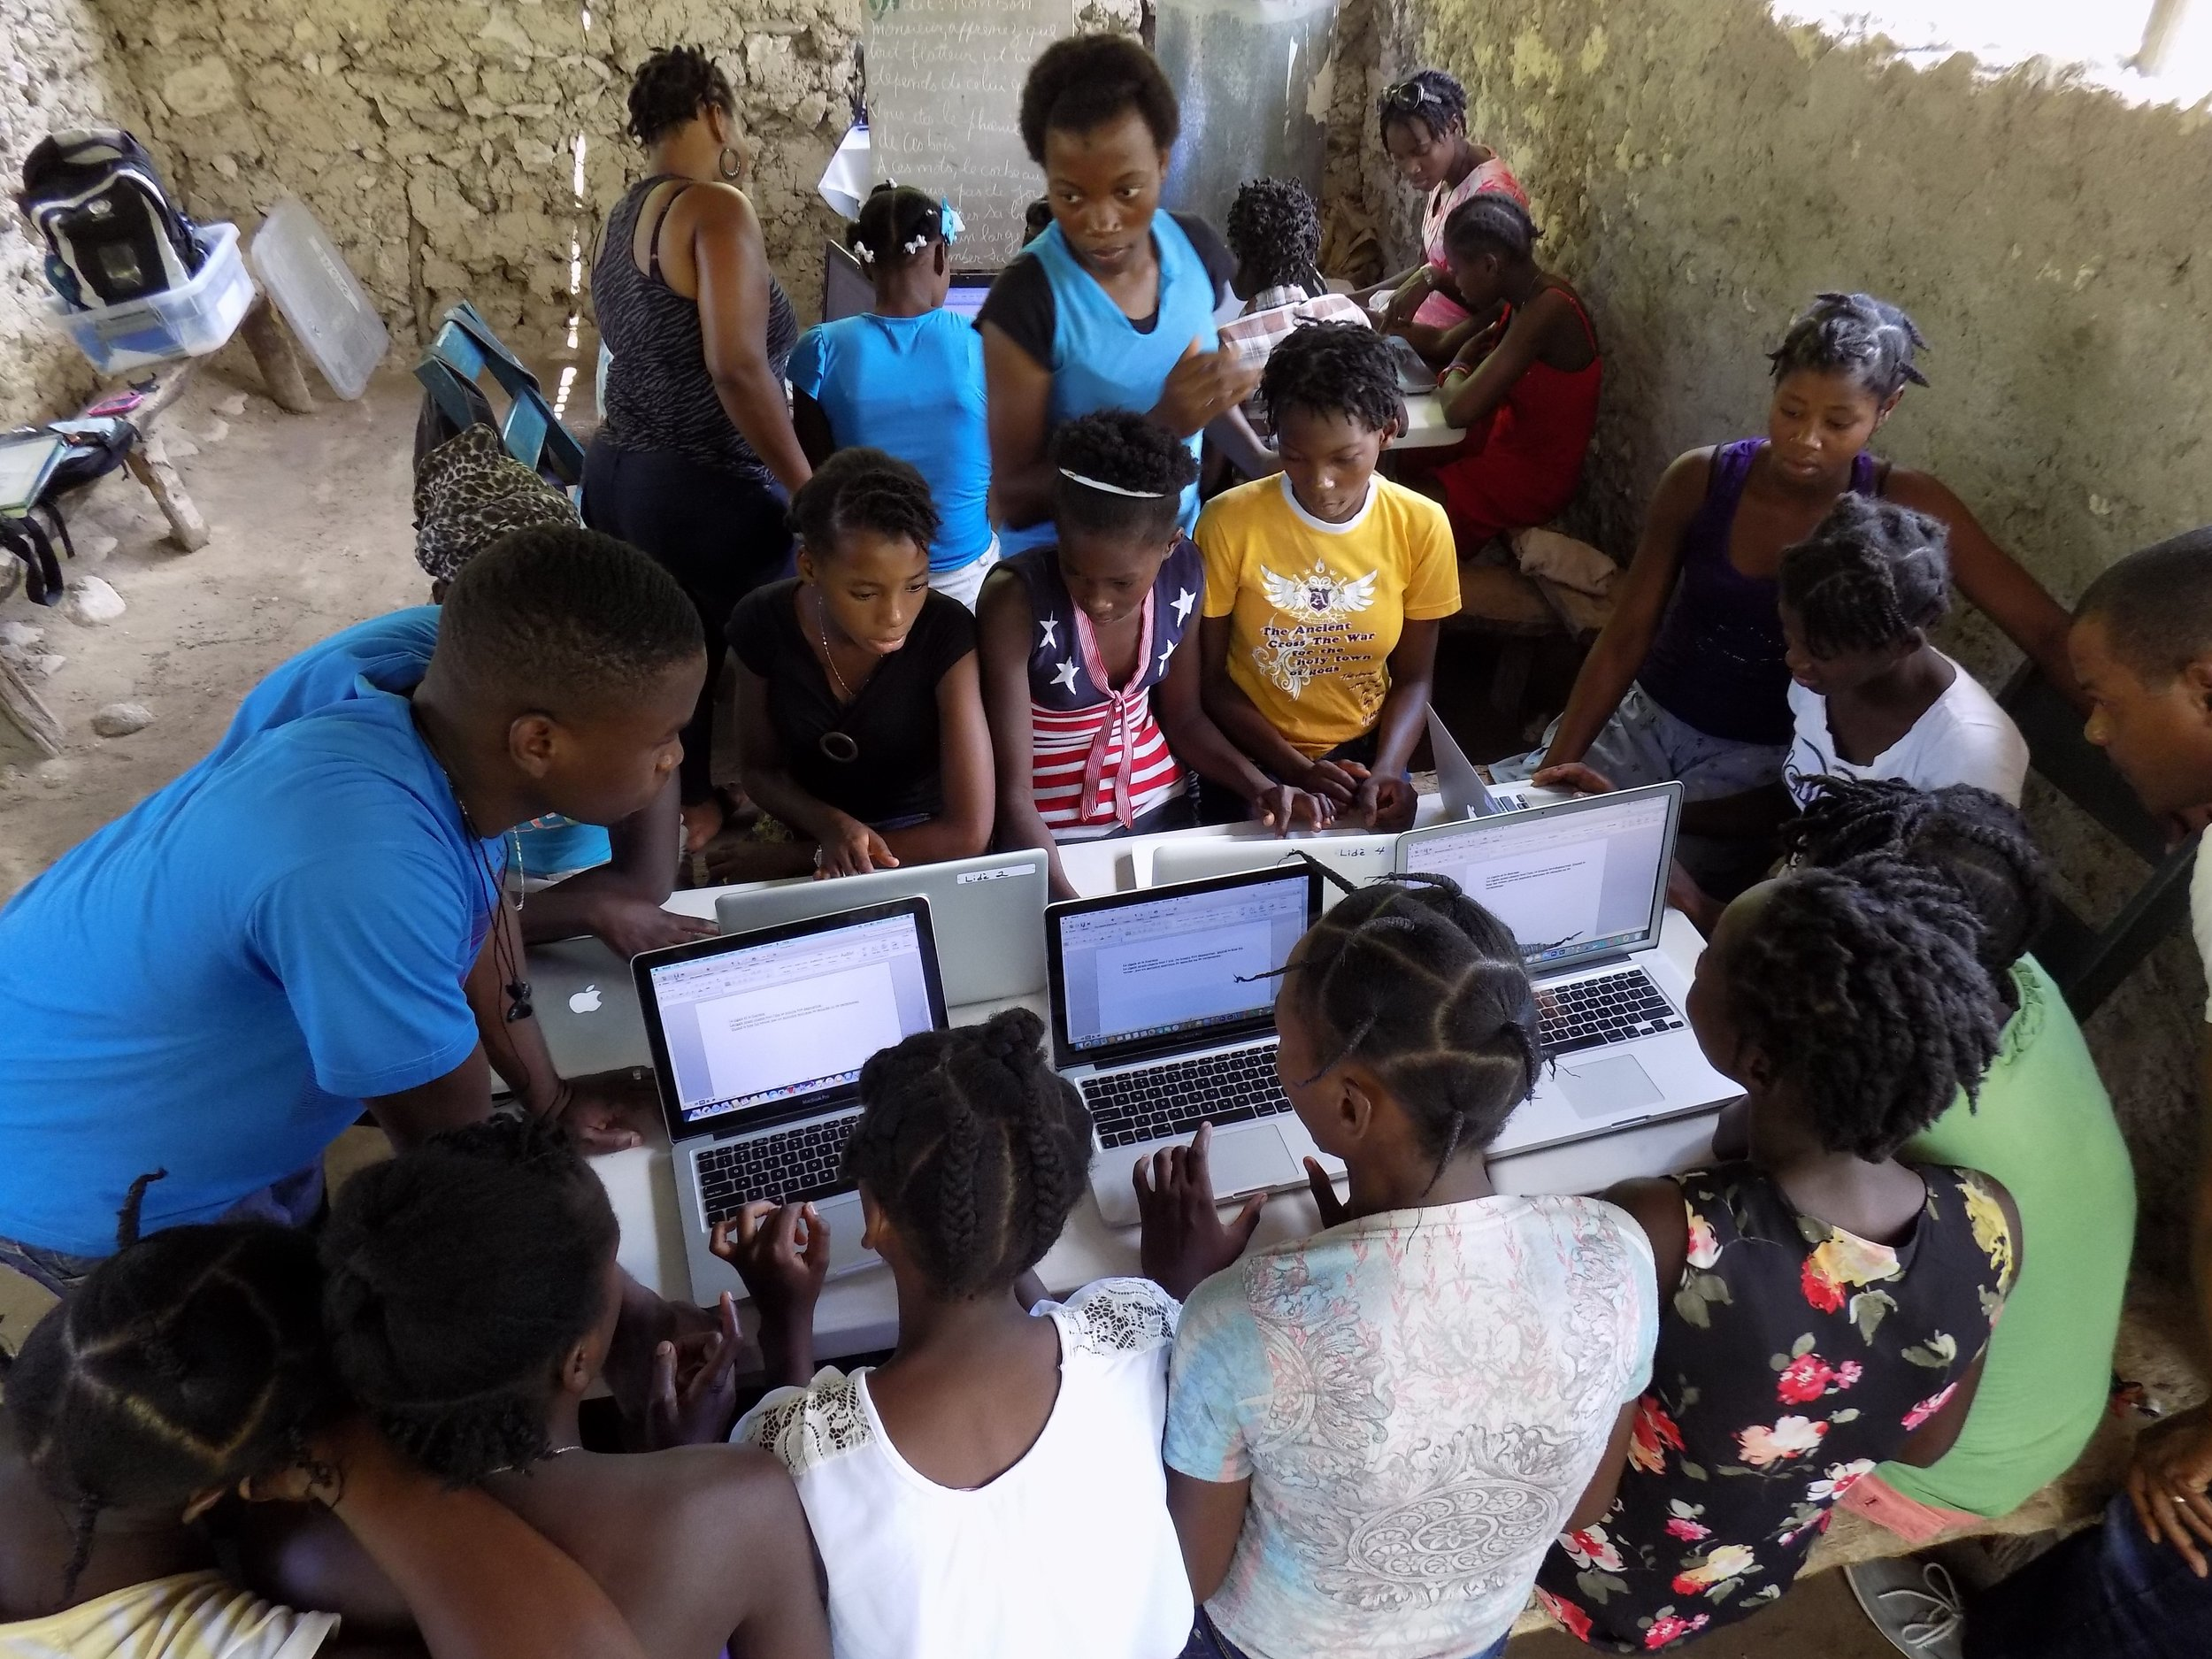 Our mobile computer labs teach computer skills to girls who would otherwise have no access to computers; skills imperative to a professional career path.